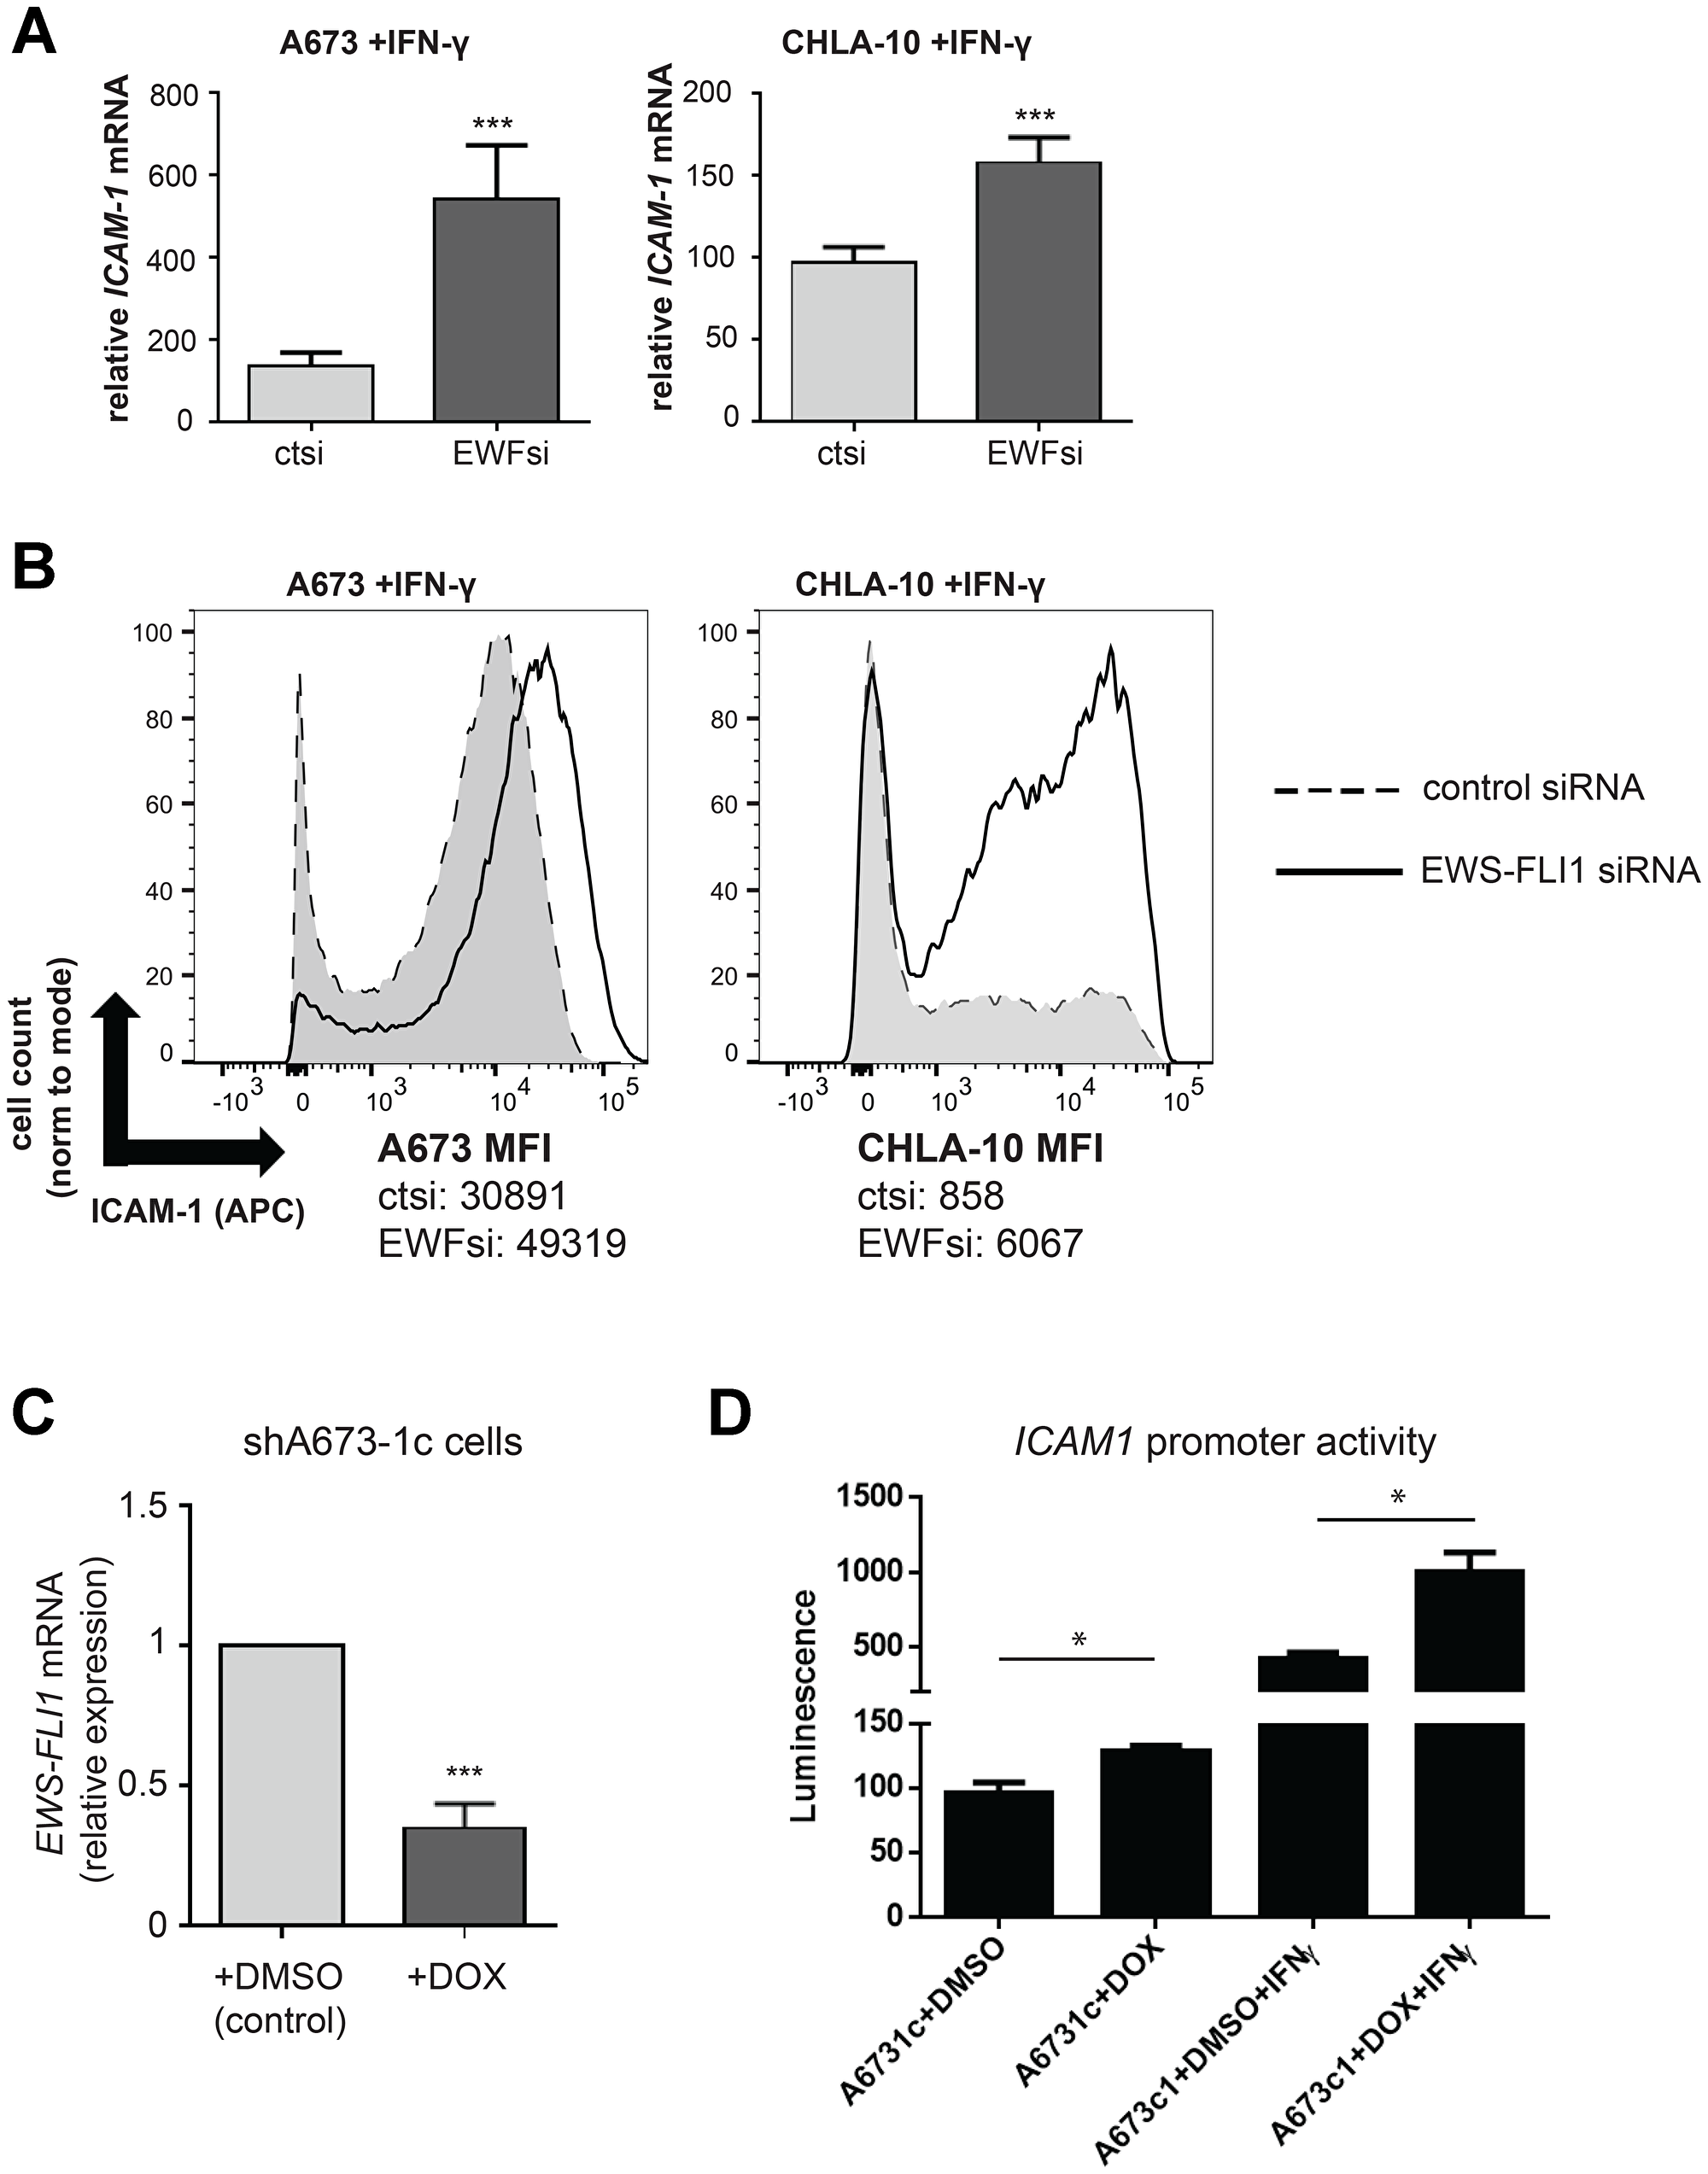 IFN-γ induced ICAM-1 expression is significantly enhanced in EWS-FLI1 'low' Ewing cells.